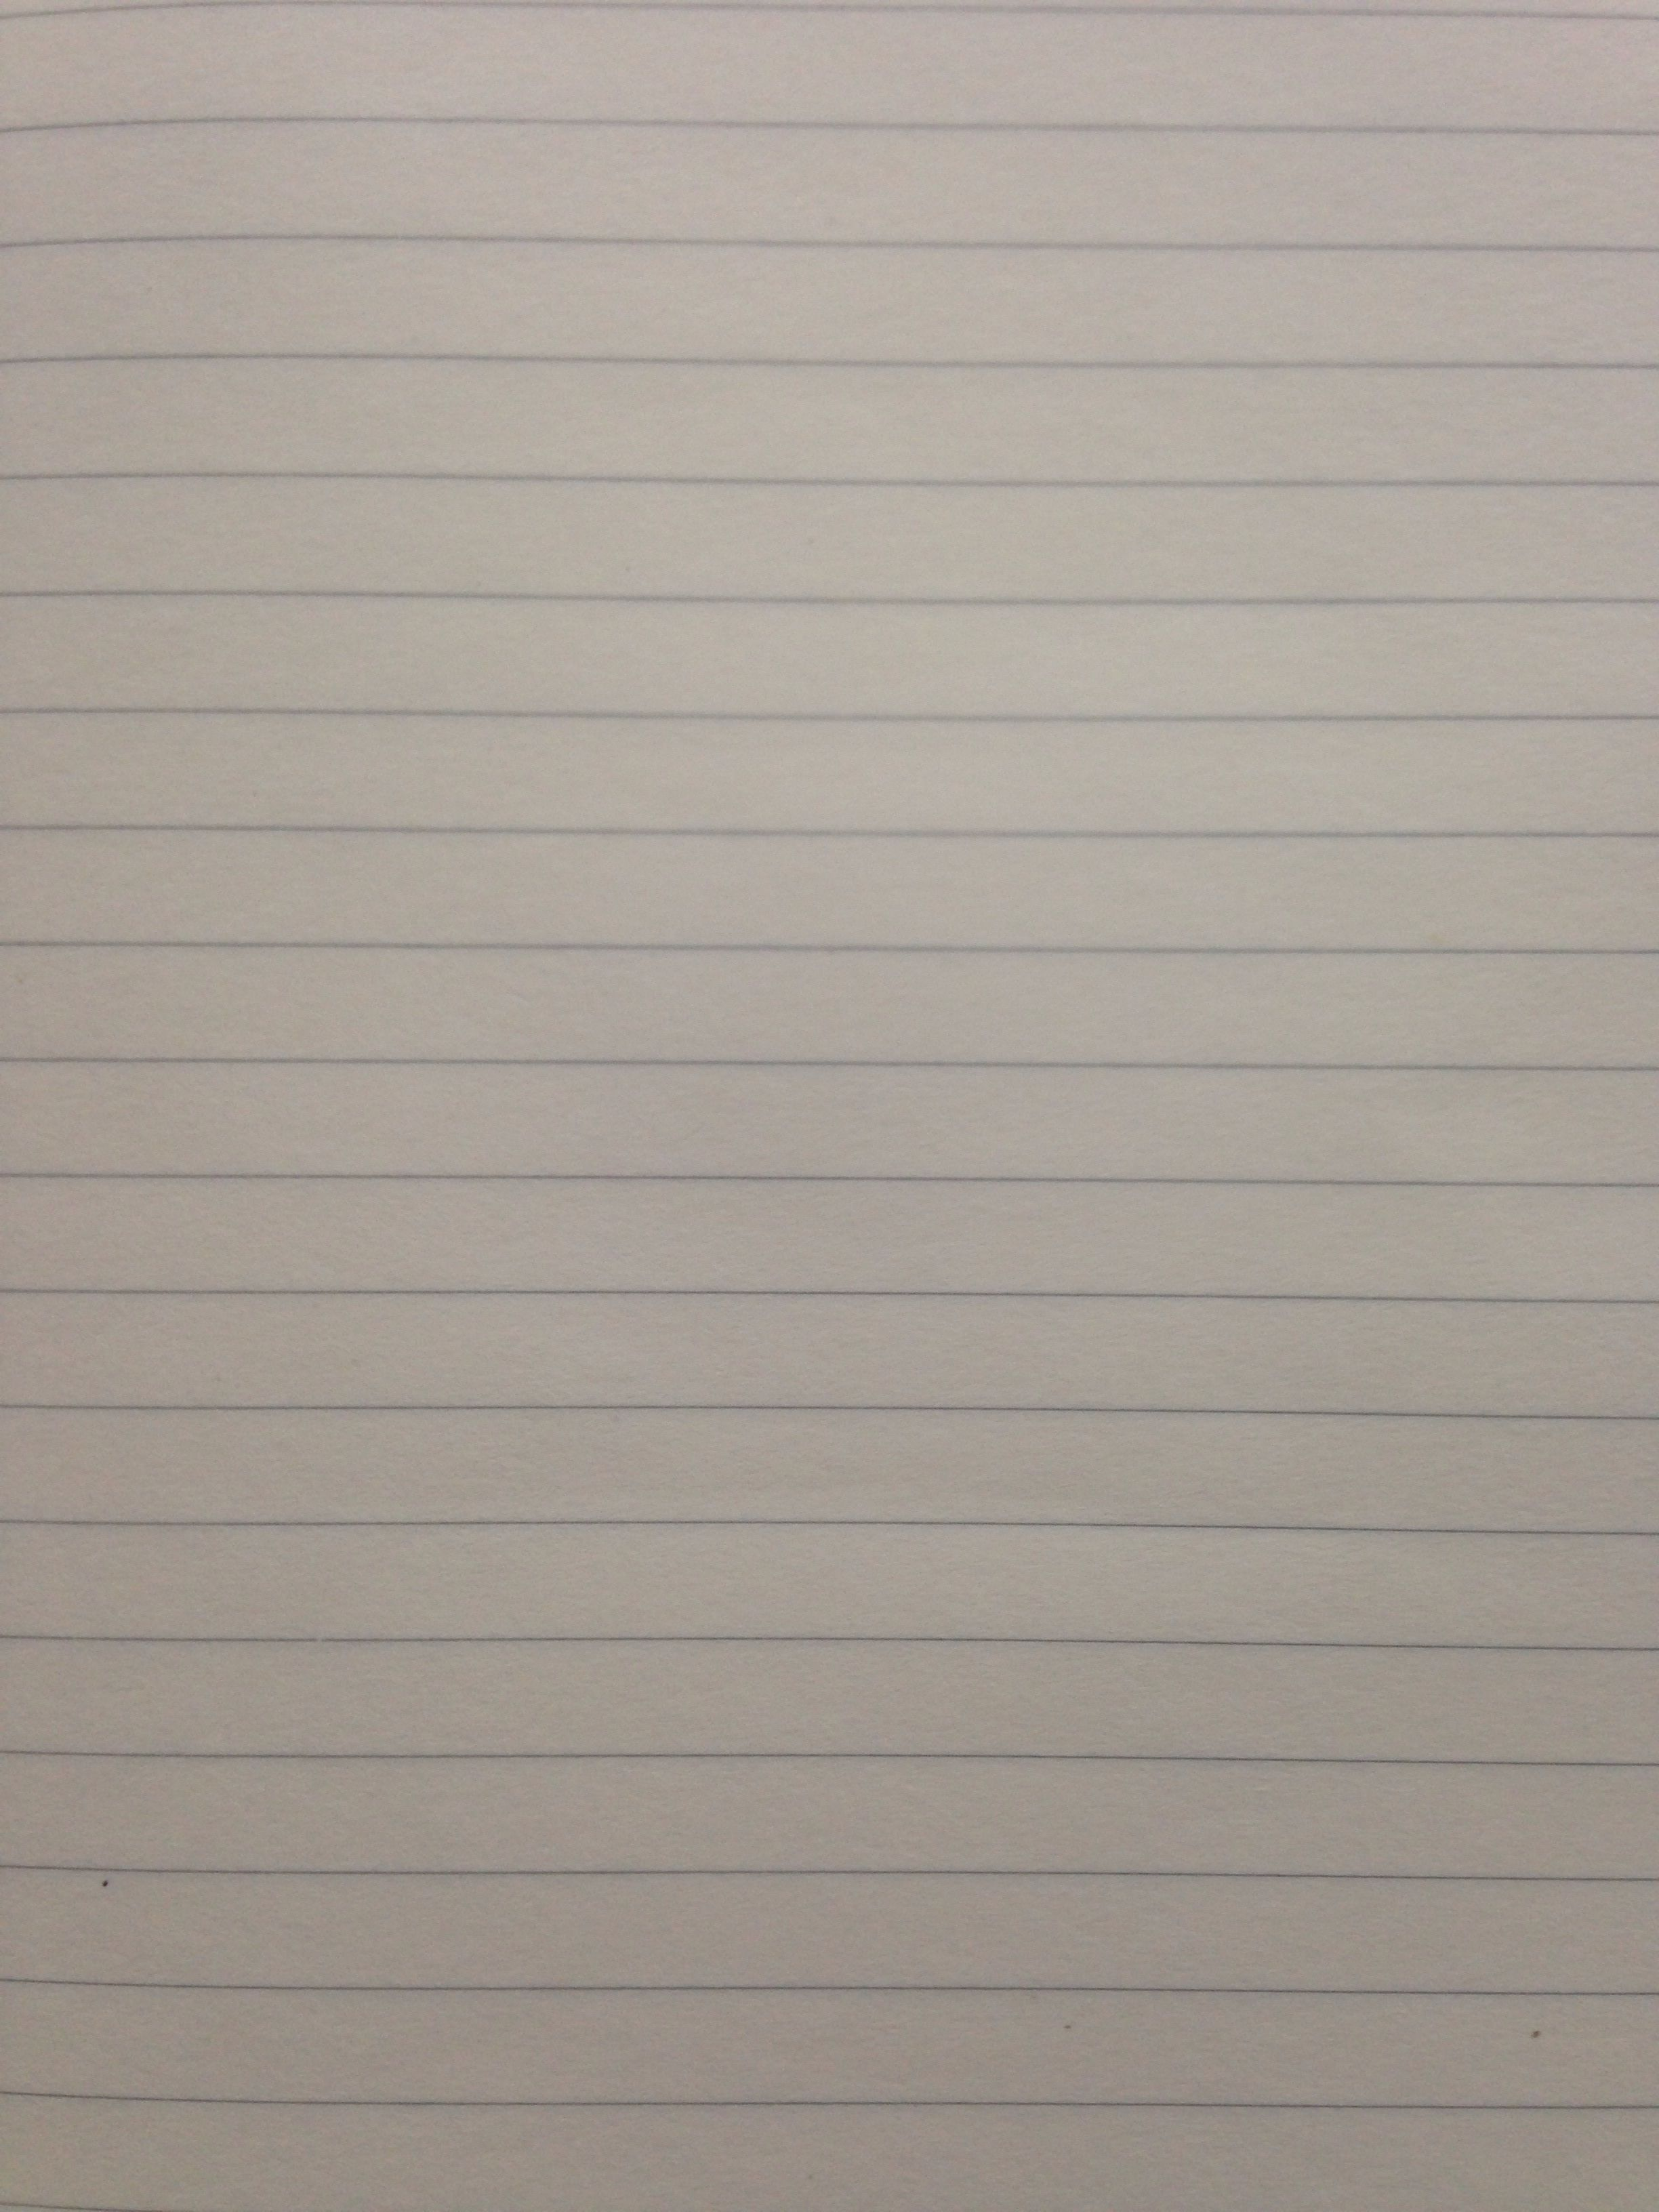 Lined Paper College Ruled File:ruled or lined paper.jpg